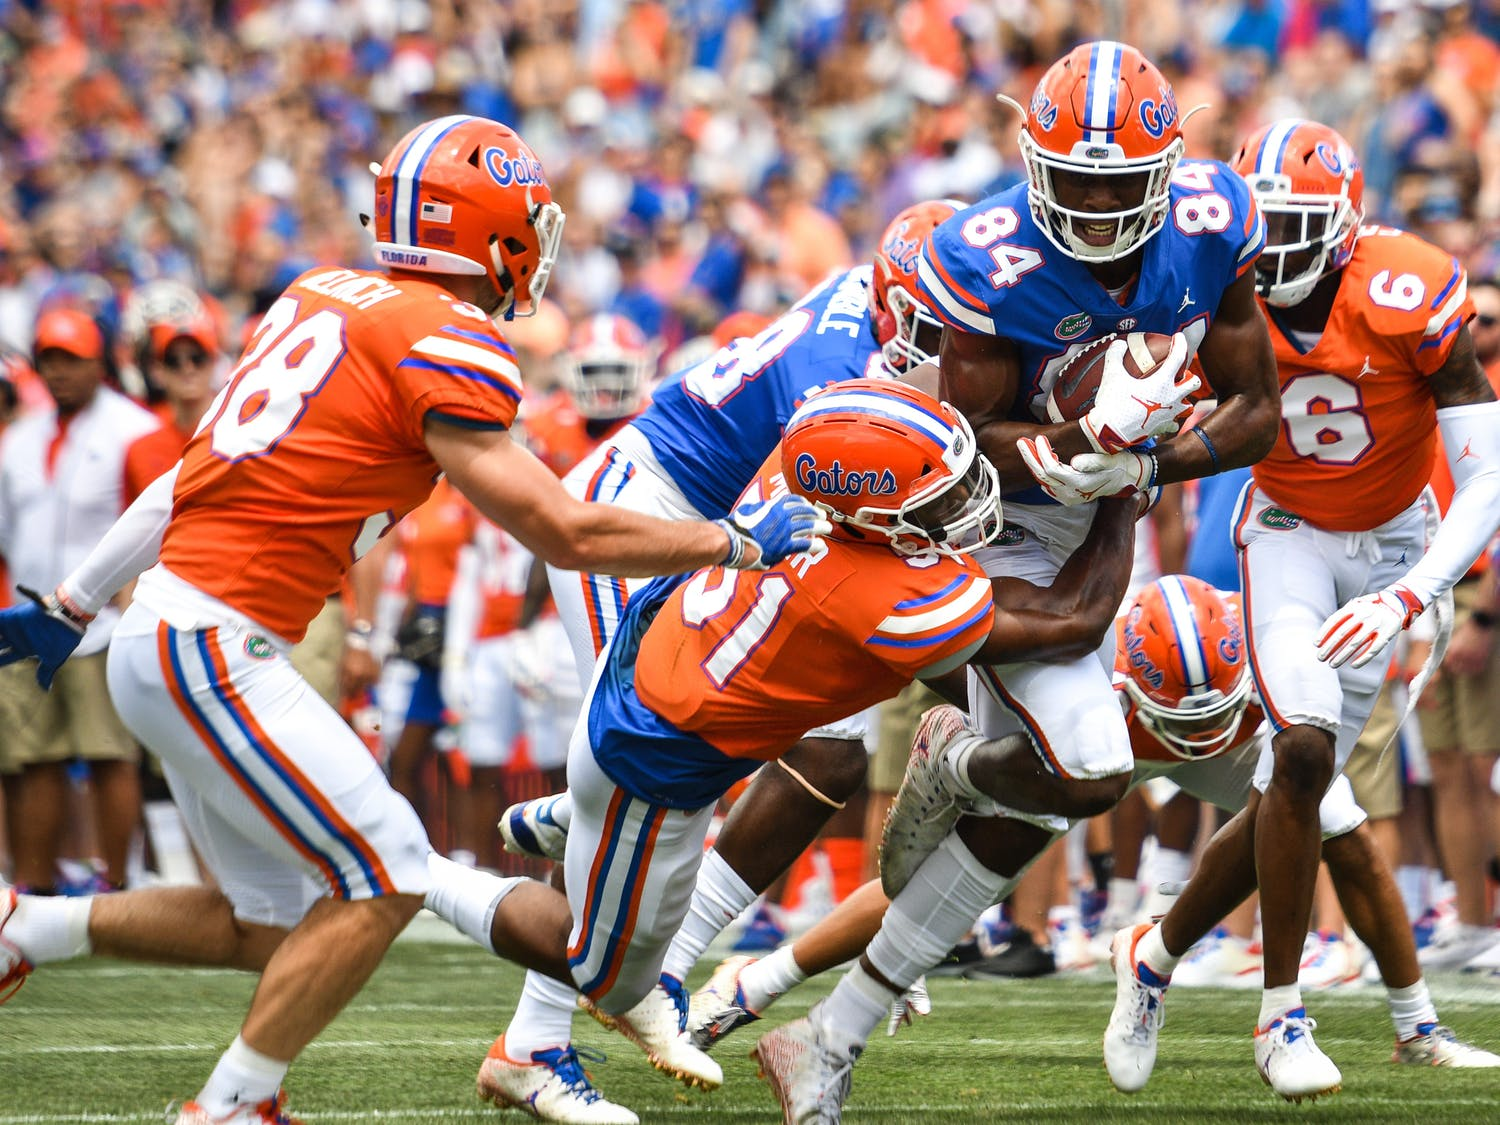 Tight end Kyle Pitts recorded four catches for 56 yards for the Blue team in UF's Orange and Blue game. Blue was defeated by Orange 60-35 in the highest-scoring spring game of all time.